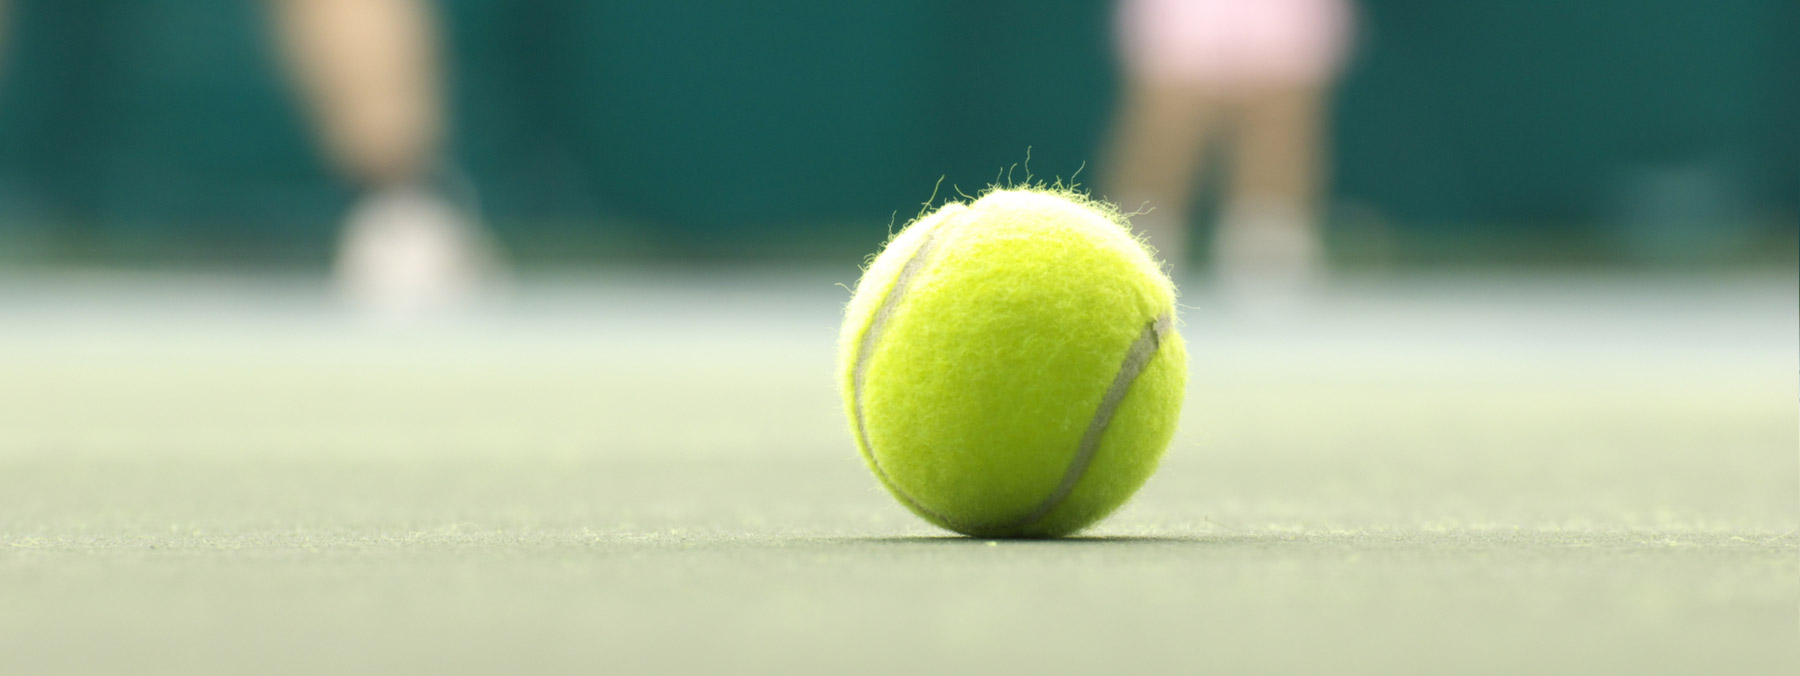 Watch our Tennis Tip of the Week